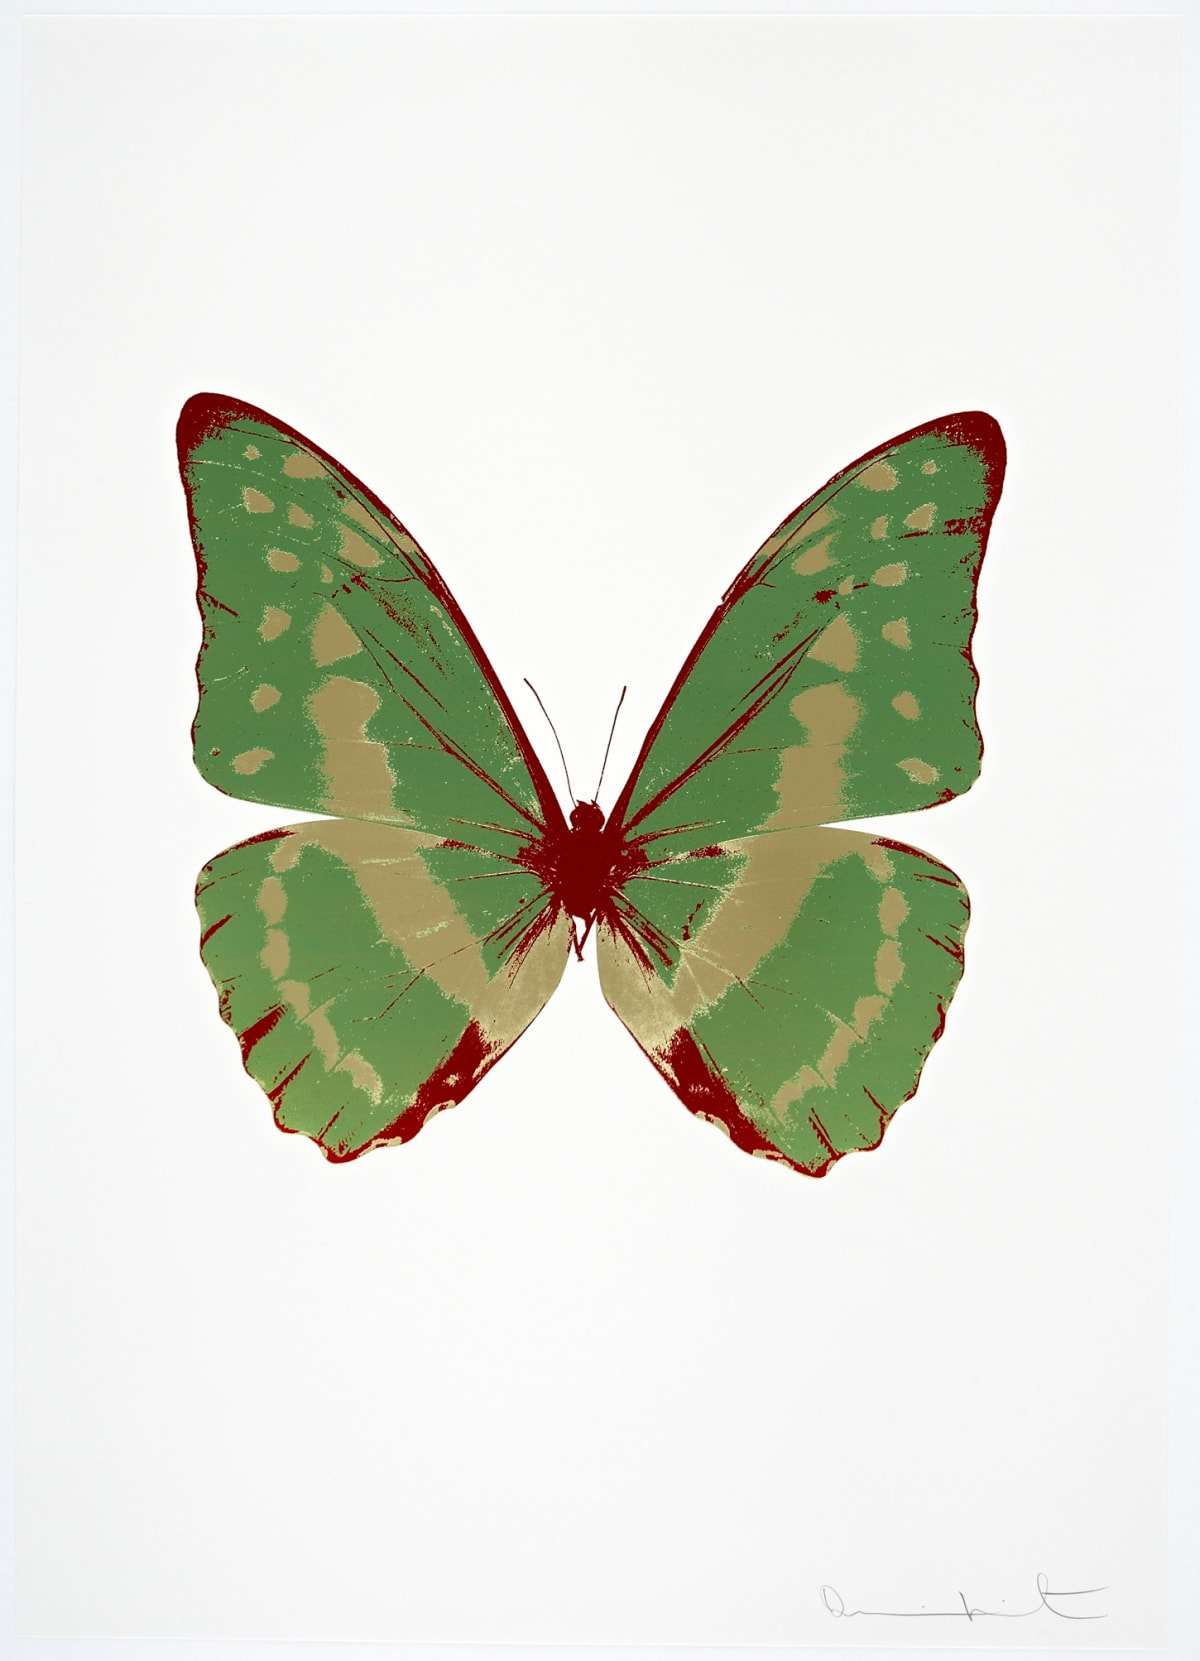 Damien Hirst The Souls III - Leaf Green/Cool Gold/Chilli Red, 2010 3 colour foil block on 300gsm Arches 88 archival paper. Signed and numbered. Published by Paul Stolper and Other Criteria 72 x 51cm OC7946 / 660-49 Edition of 15